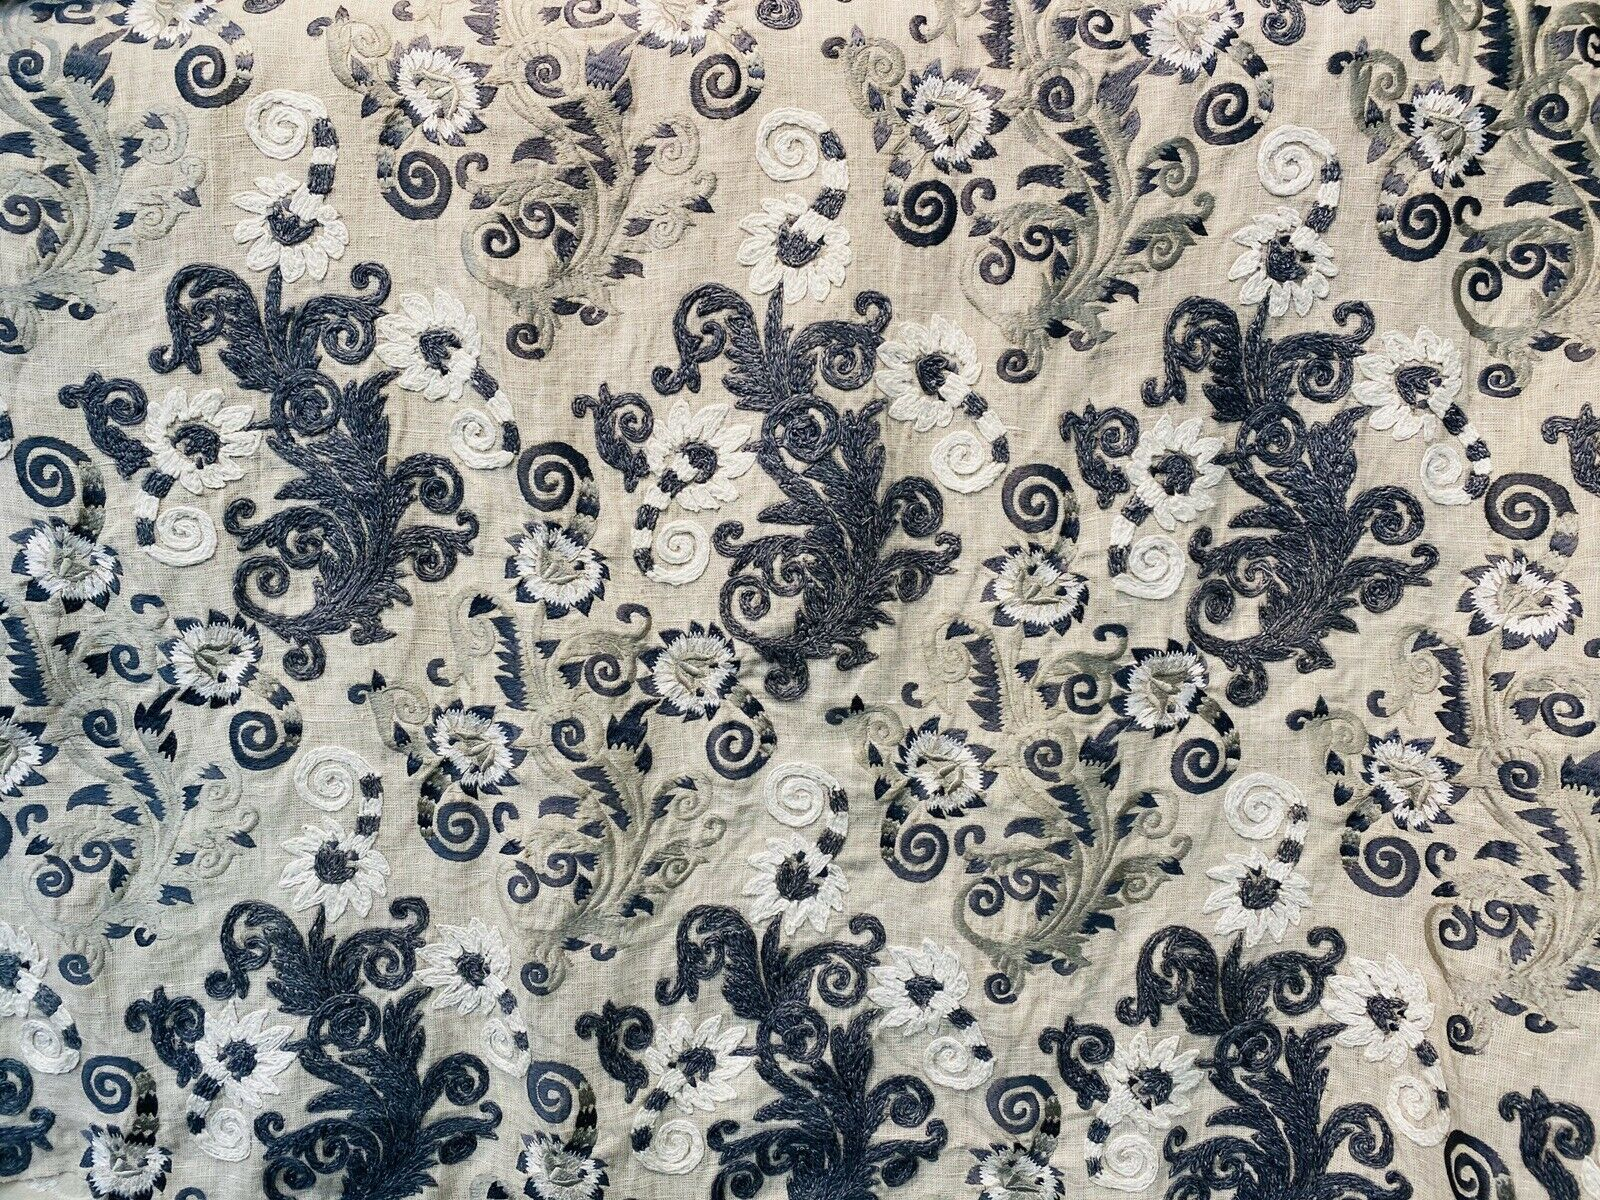 NEW! Novelty 100% Linen Fabric Floral Crewel Embroidery- Blue, White, Ecru